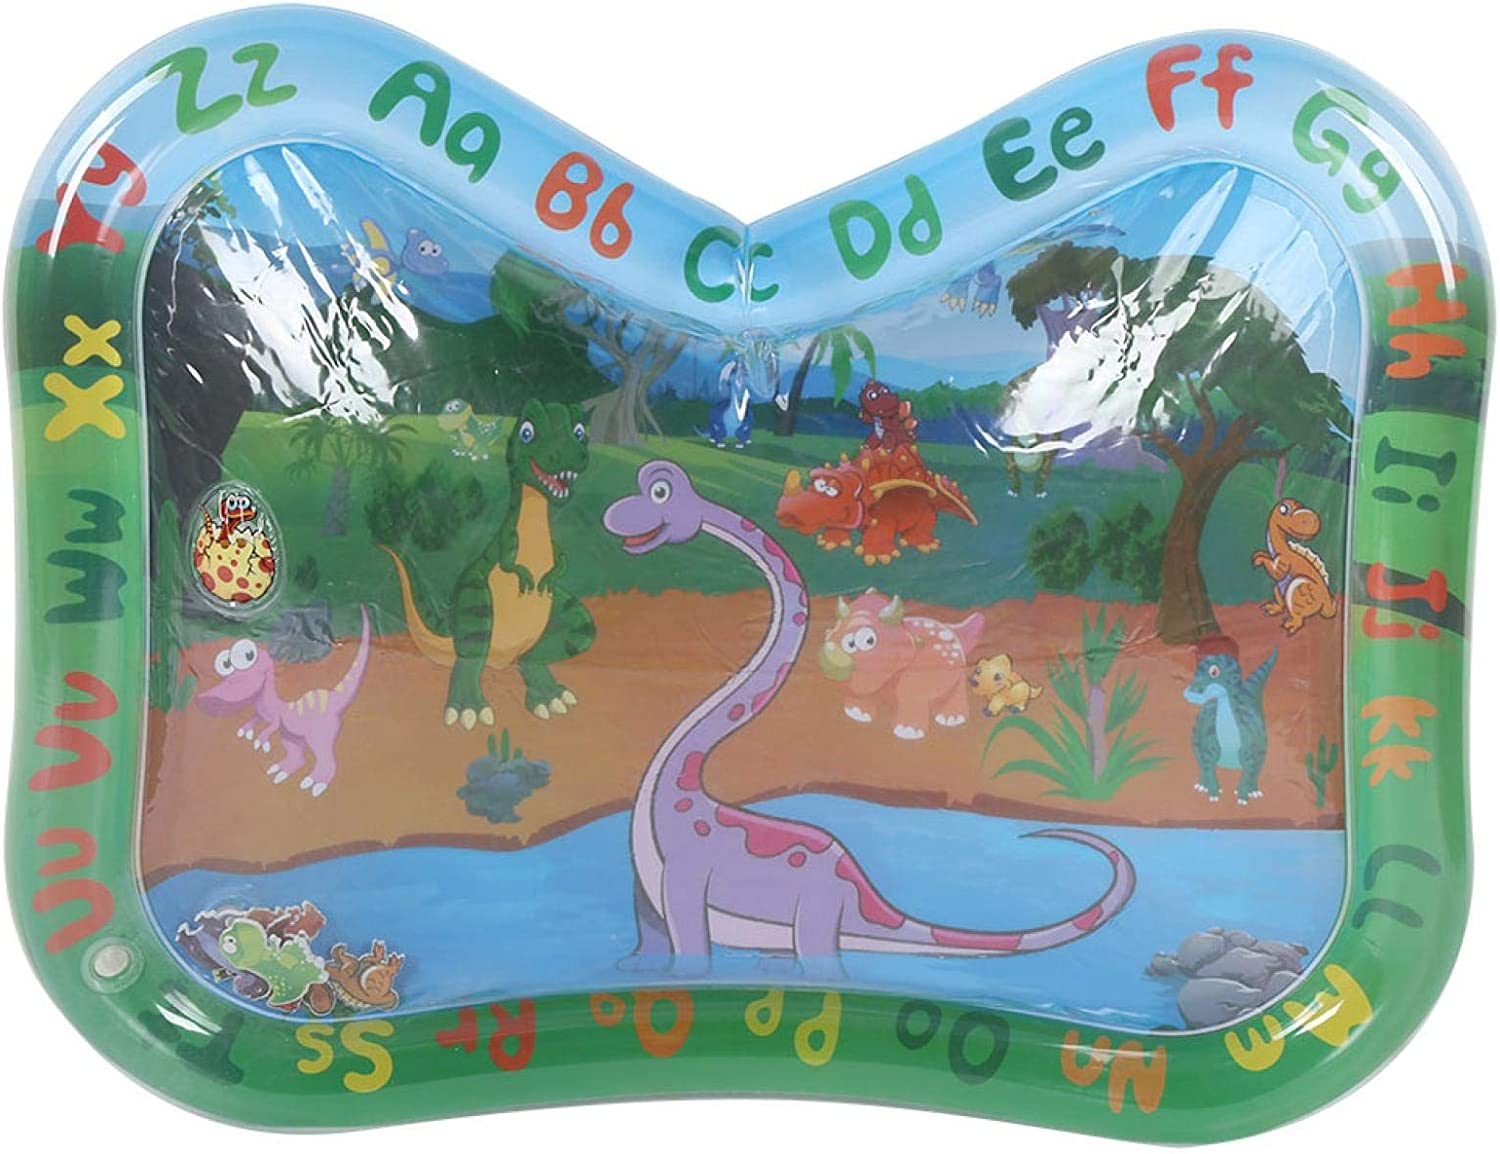 SALUTUYA Baby Play Fixed price for sale Mat Excellent Colorful 2021 new Ed Characteristics for